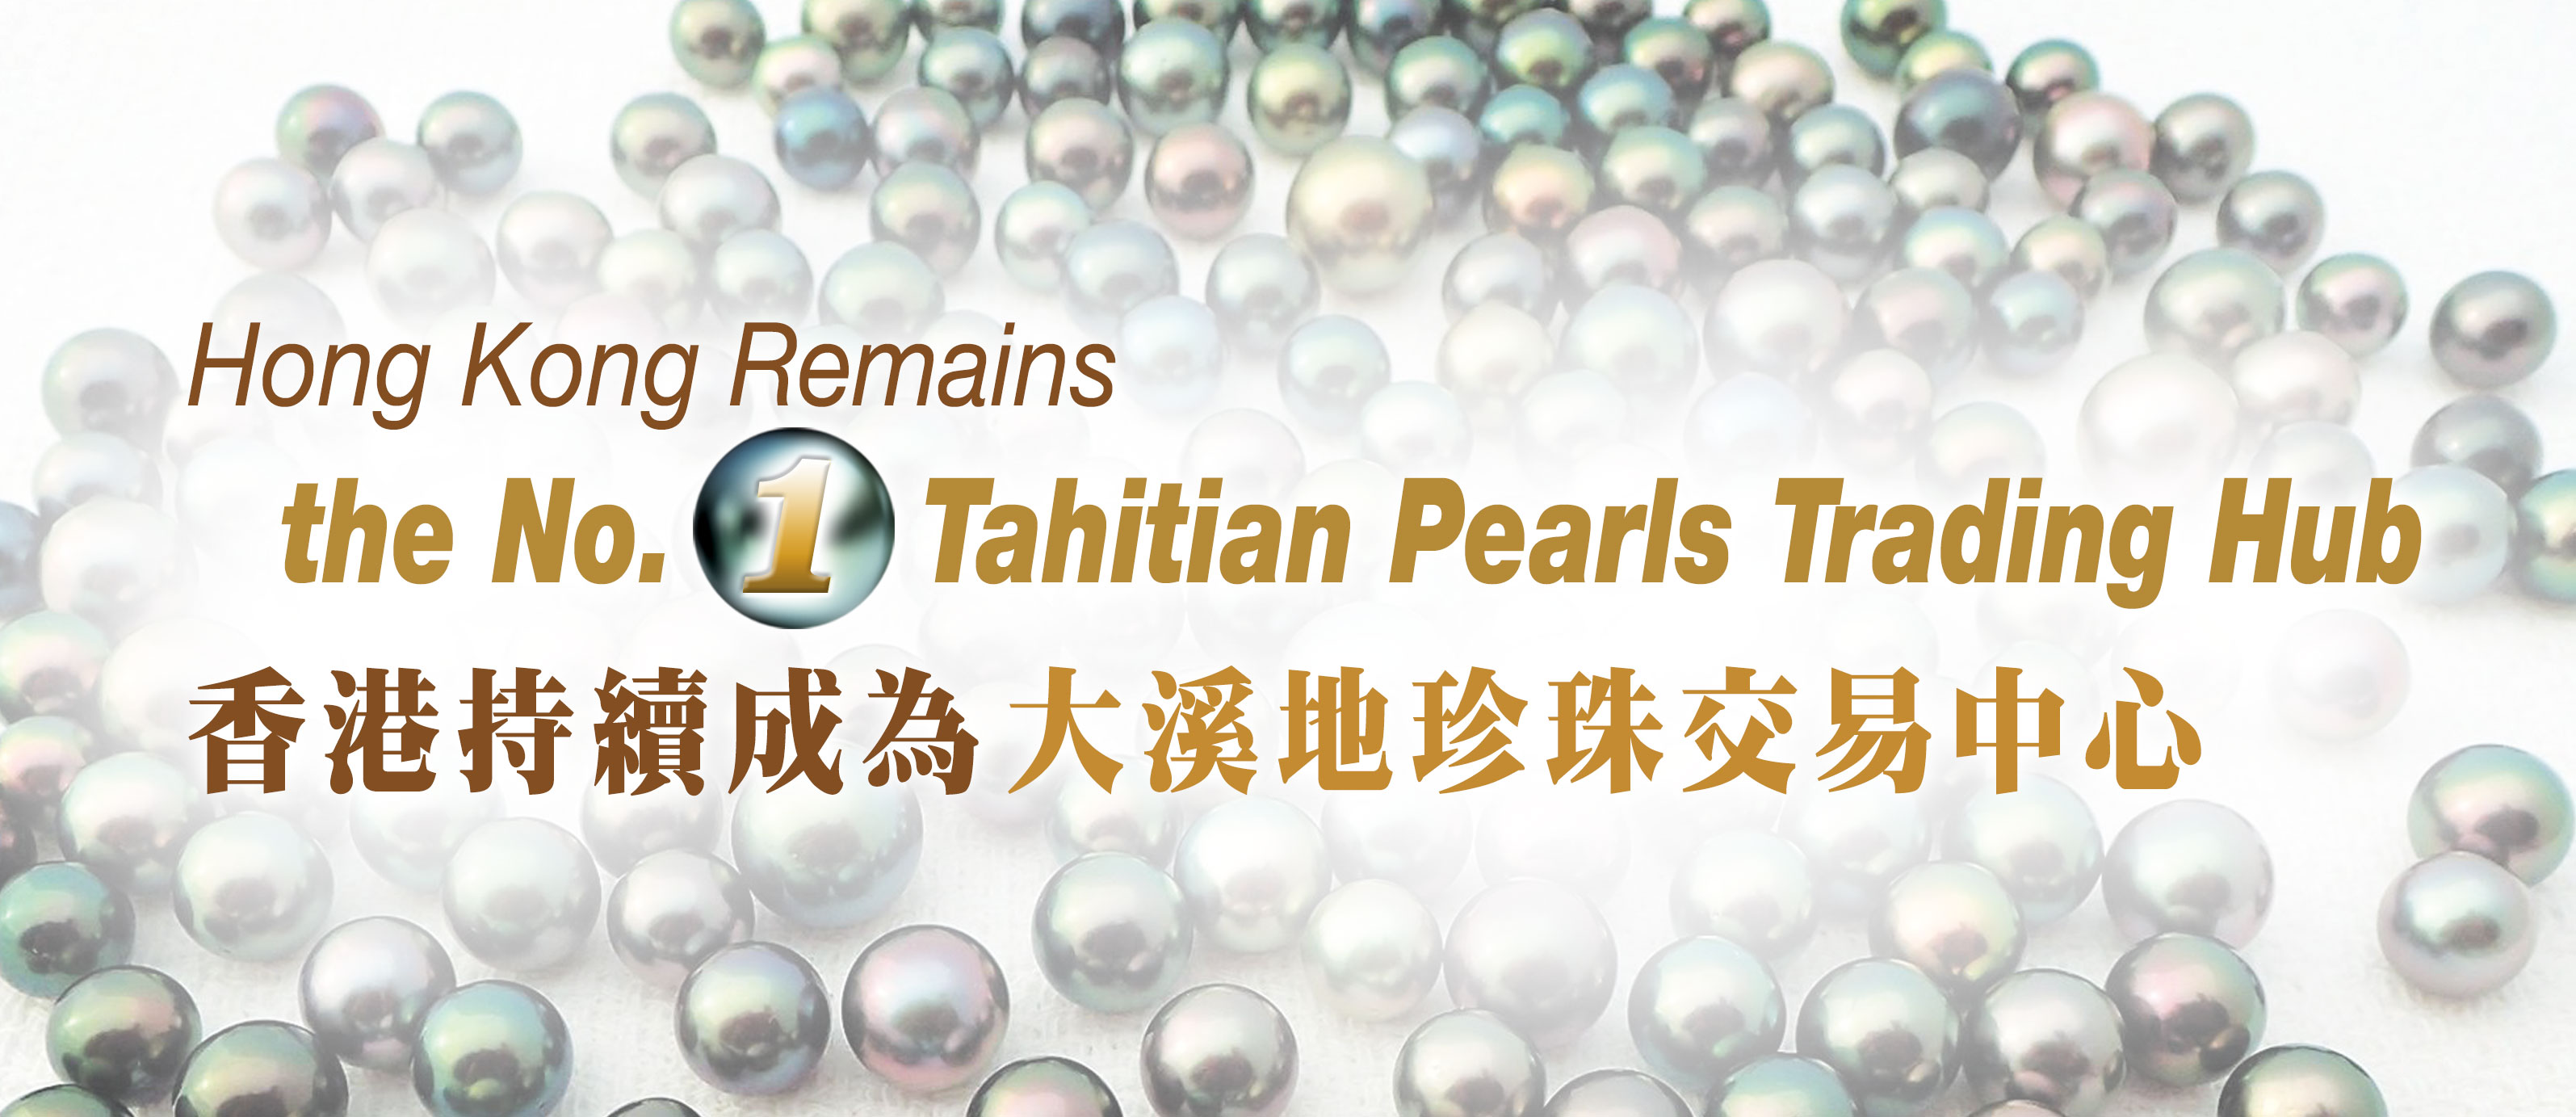 Hong Kong Remains the No.1 Tahitian Pearls Trading Hub